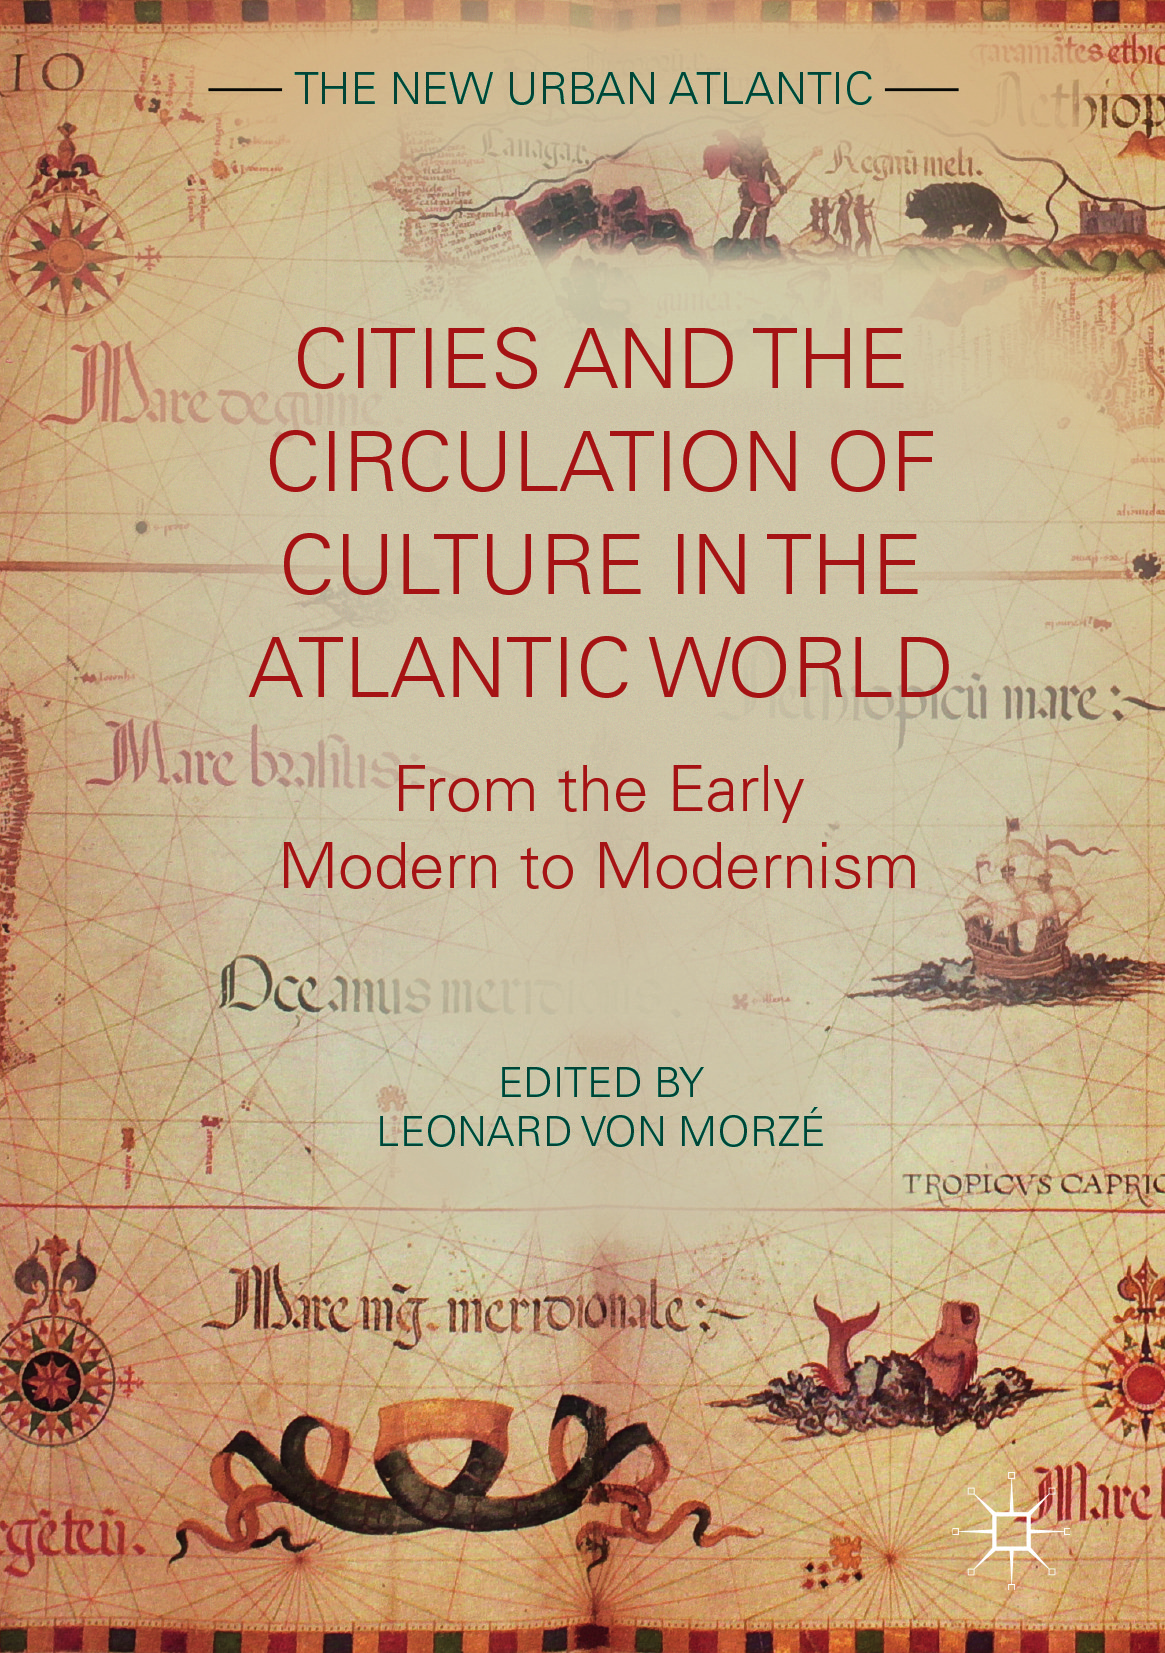 Morzé, Leonard von - Cities and the Circulation of Culture in the Atlantic World, ebook